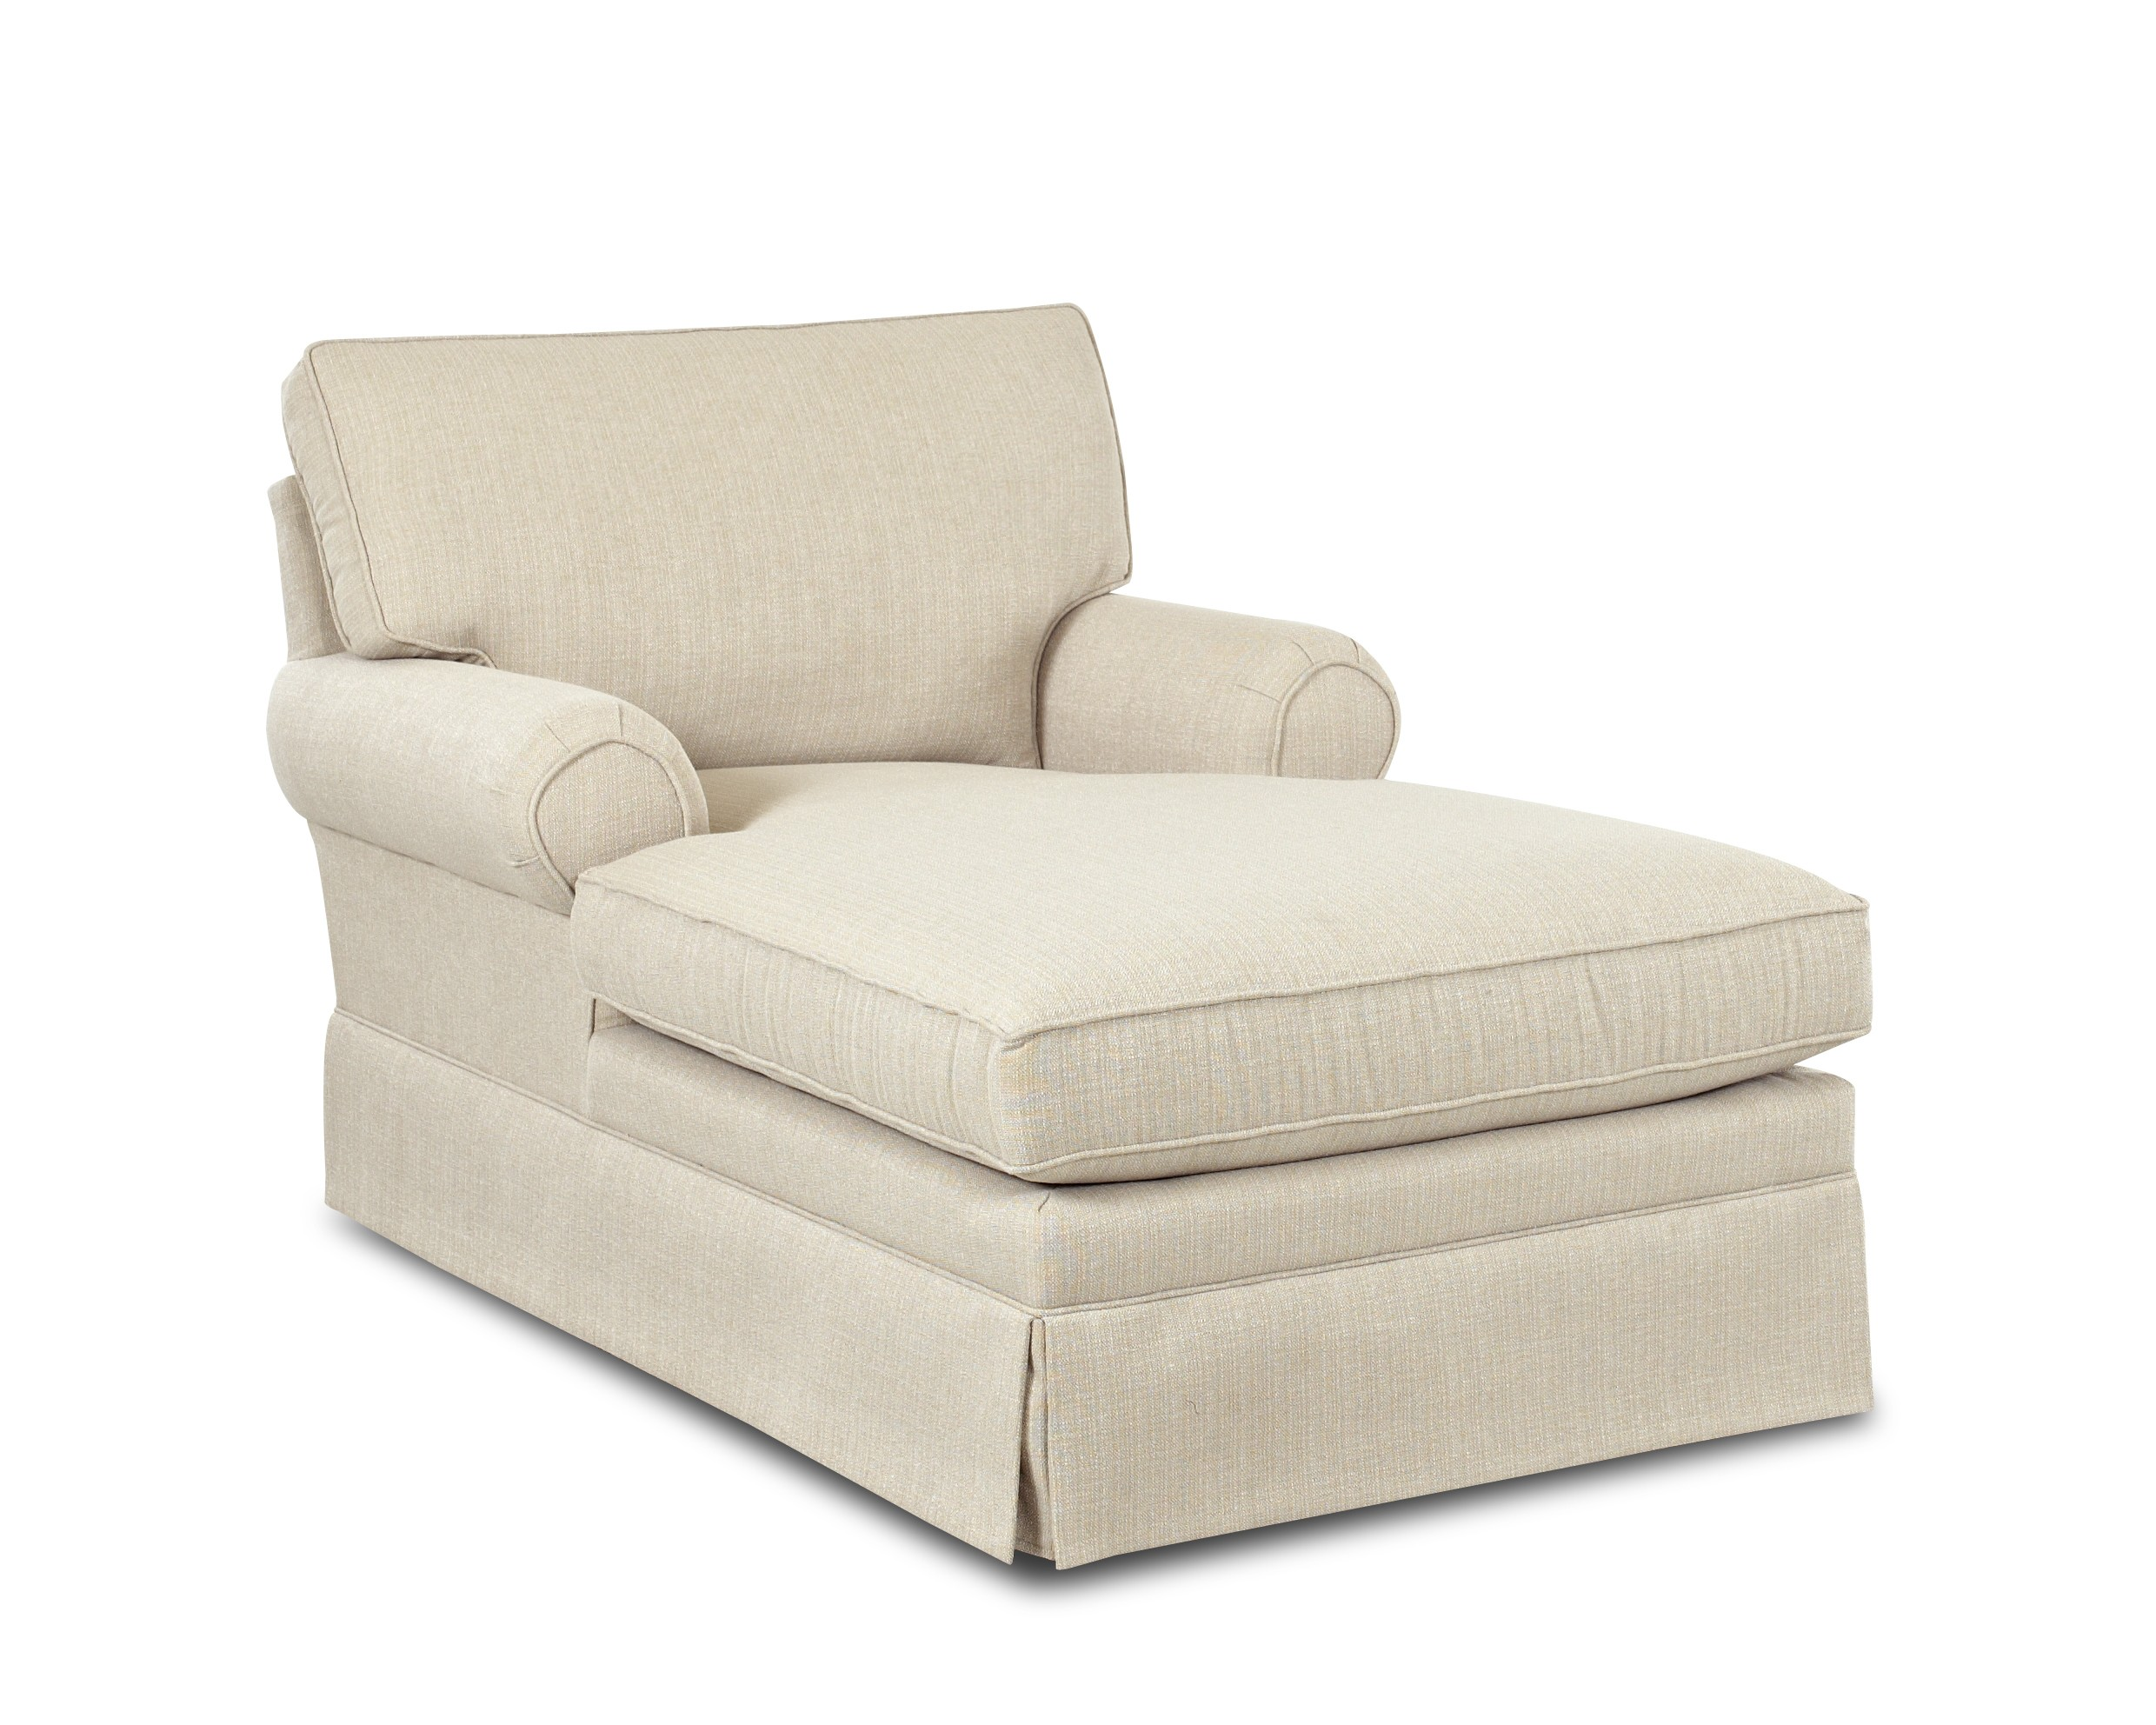 Carolina Slipcover Chaise Lounge